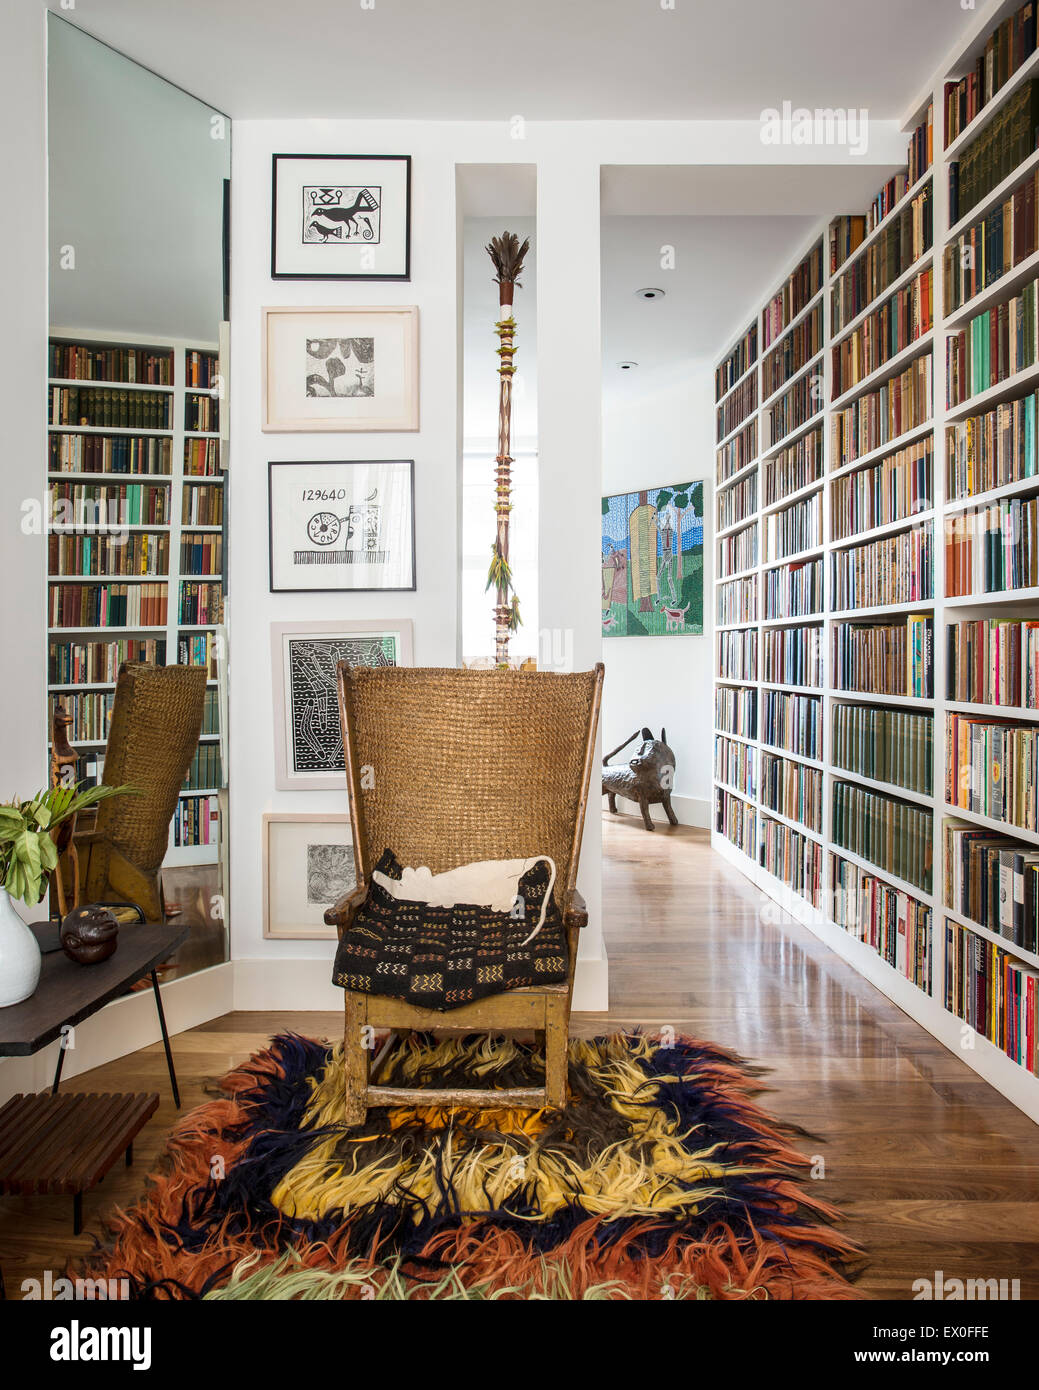 Antique Orkney chair in room with book shelving, shaggy rug and framed art. - Antique Orkney Chair In Room With Book Shelving, Shaggy Rug And